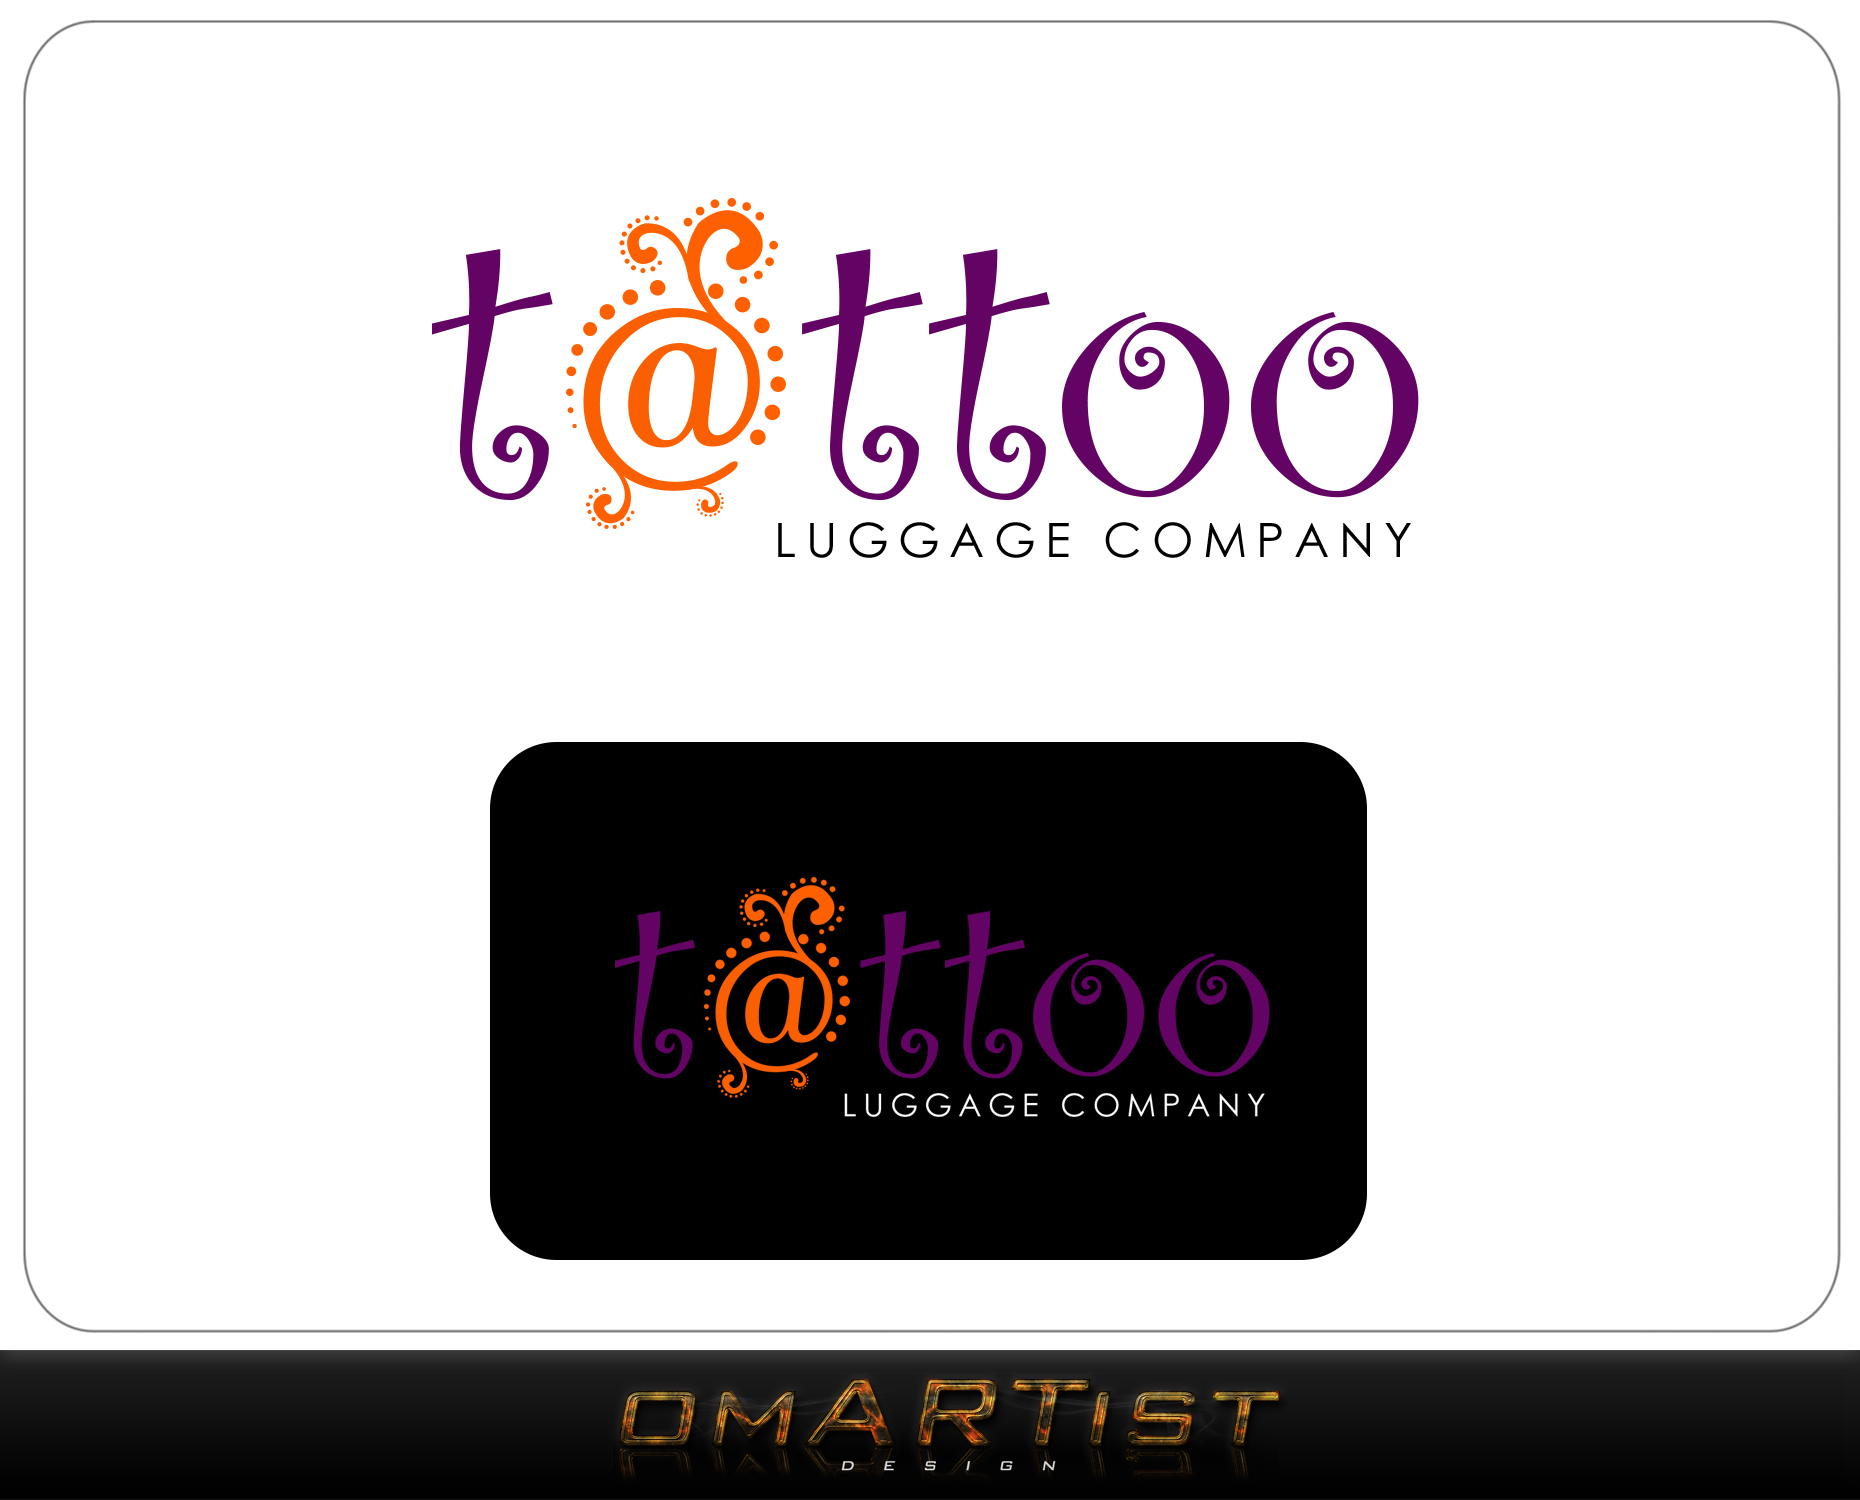 Logo Design by omARTist - Entry No. 155 in the Logo Design Contest Artistic Logo Design for Tattoo Luggage Company.